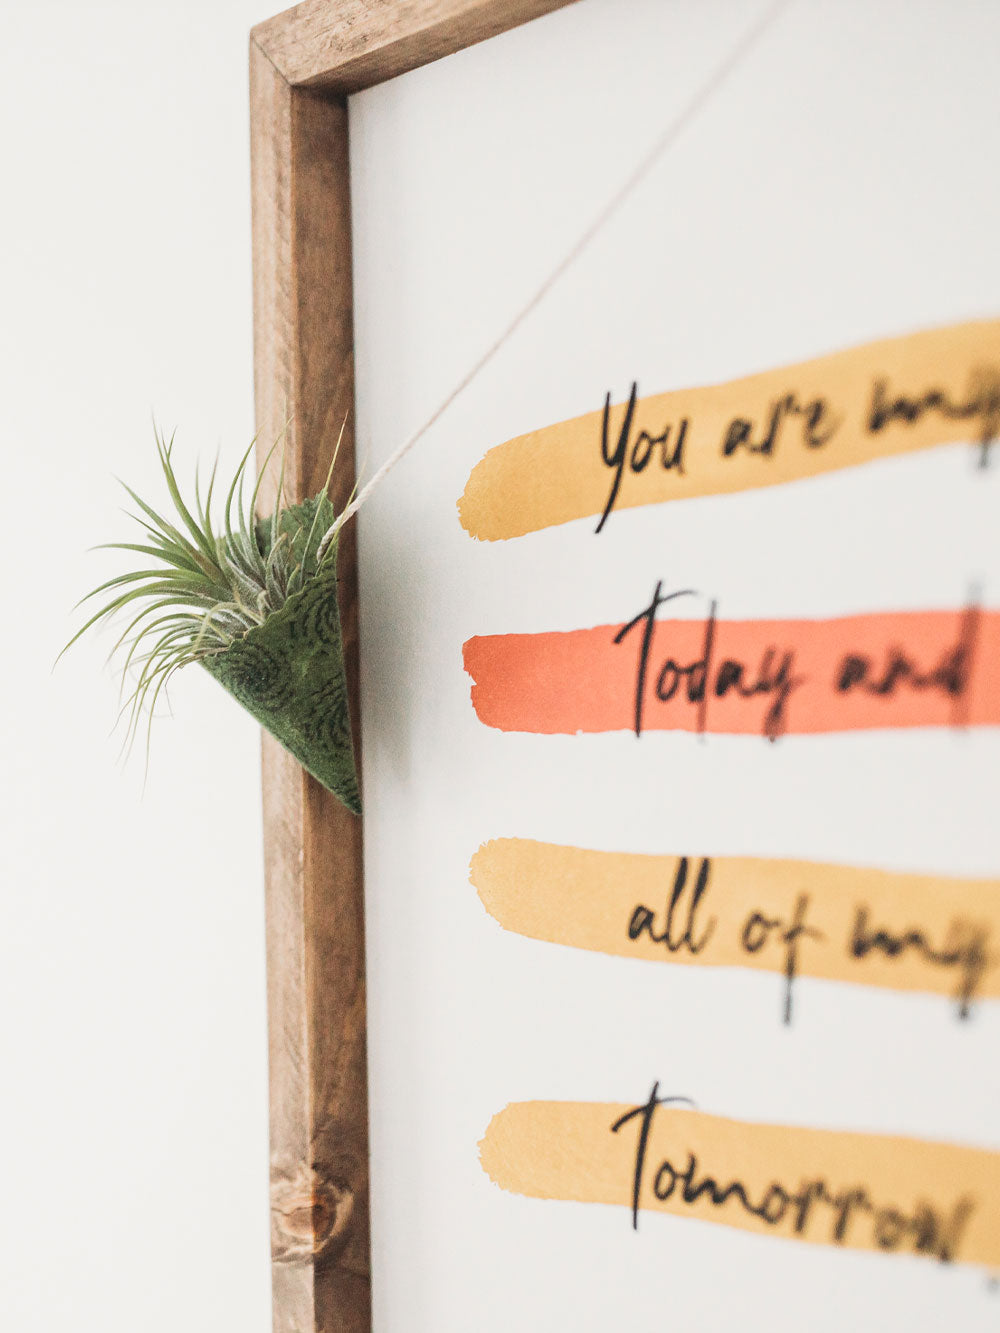 An air plant sits in a green swirl print cone plant holder. The cord from the plant holder is strung over the edge of a framed print. A few words can be seen from the print: you are; today; all of my; tomorrow.